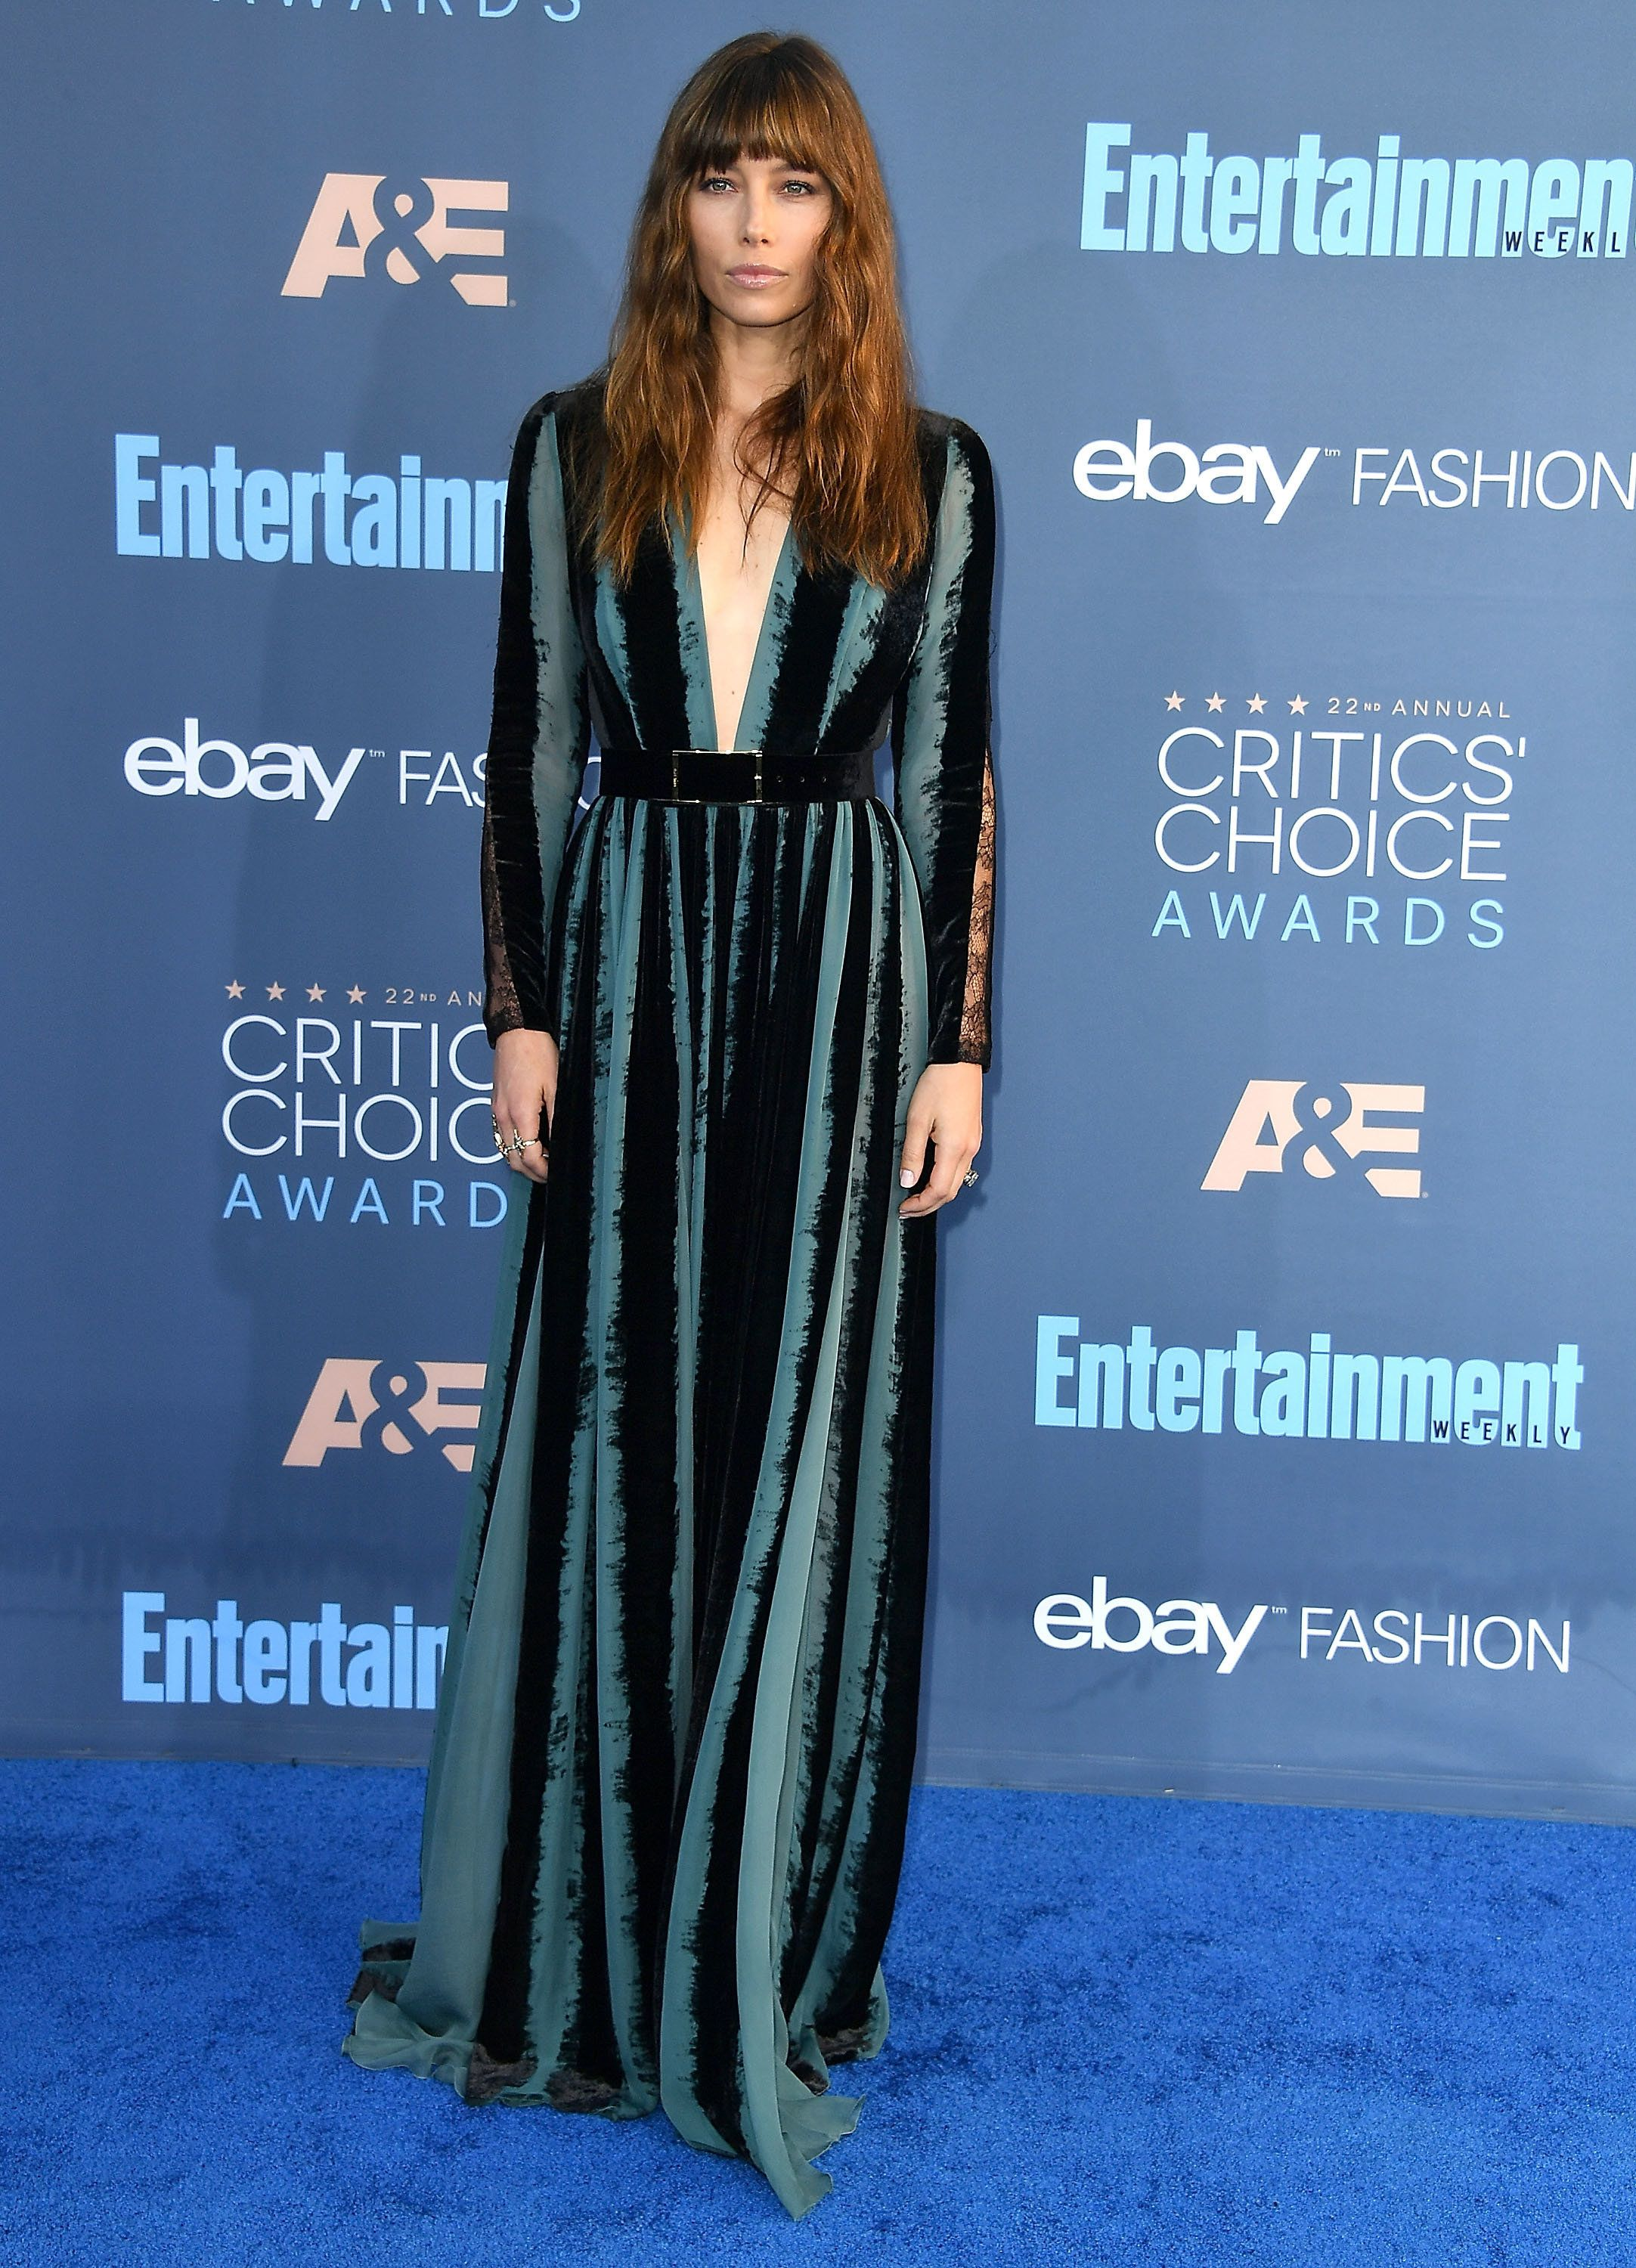 SANTA MONICA, CA - DECEMBER 11:  Jessica Biel arrives at the The 22nd Annual Critics' Choice Awards at Barker Hangar on December 11, 2016 in Santa Monica, California.  (Photo by Steve Granitz/WireImage)